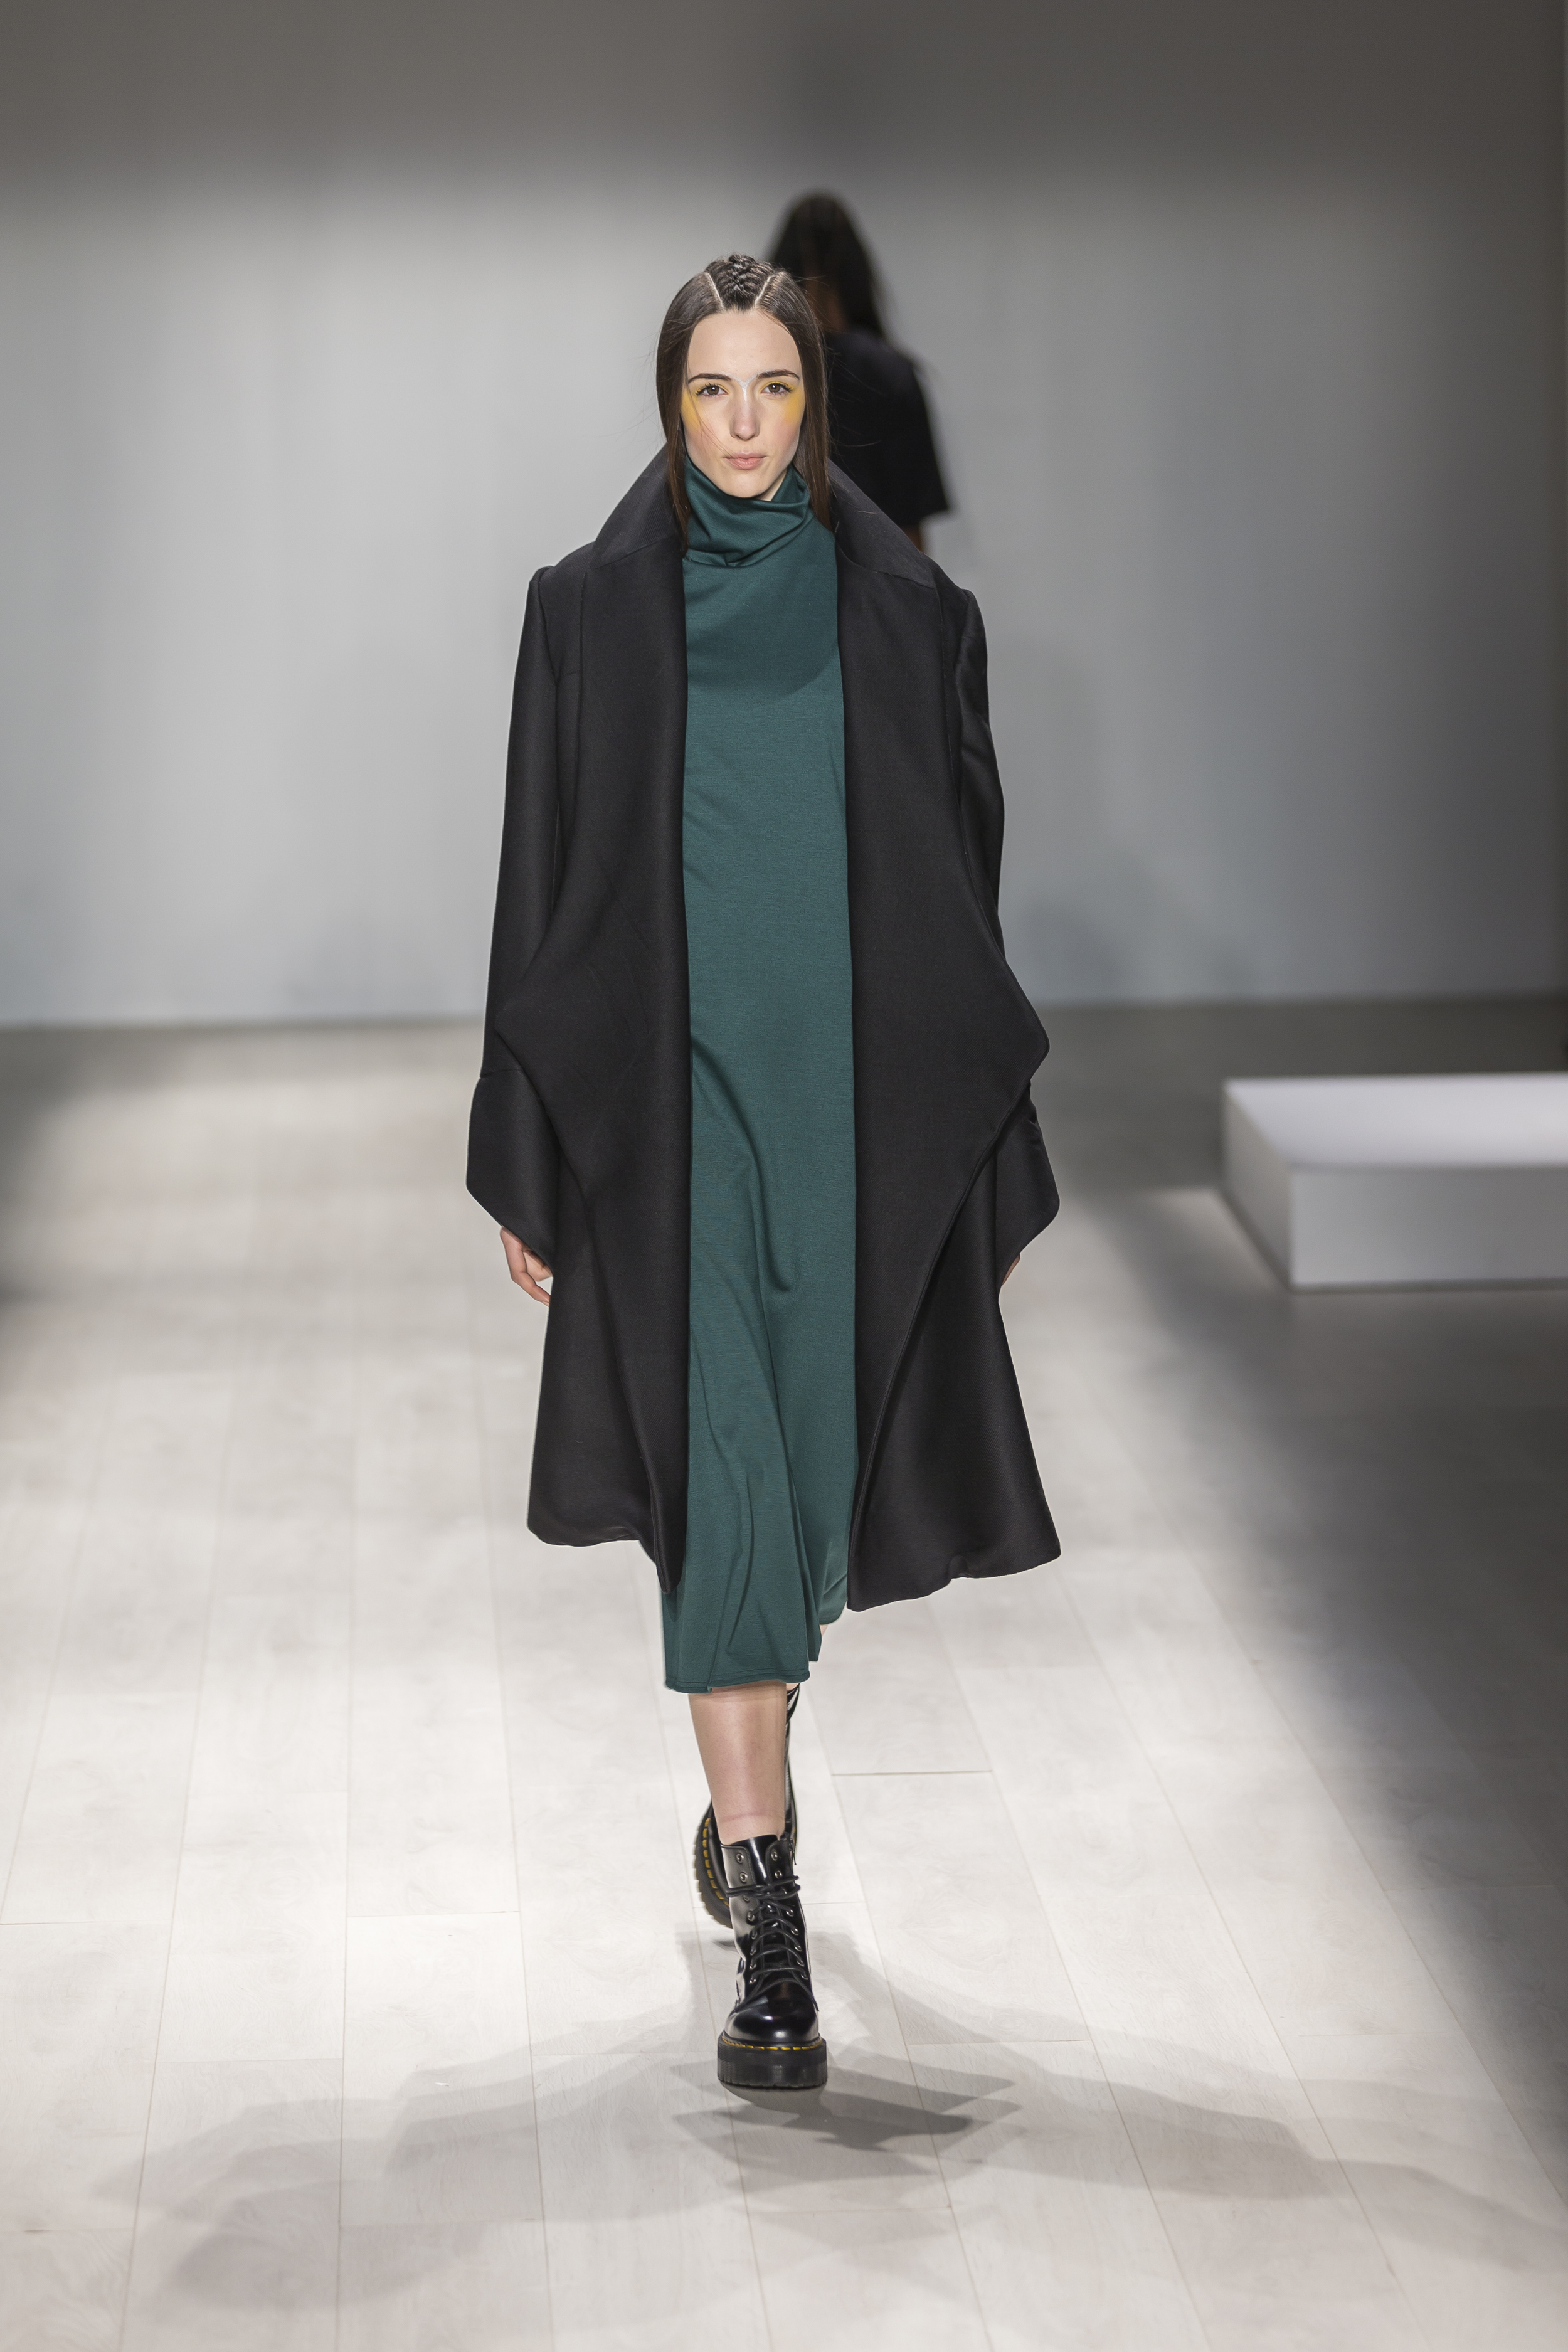 World MasterCard Fashion Week FW14: In With the Old, In With the New  – divine.ca, March 26, 2014